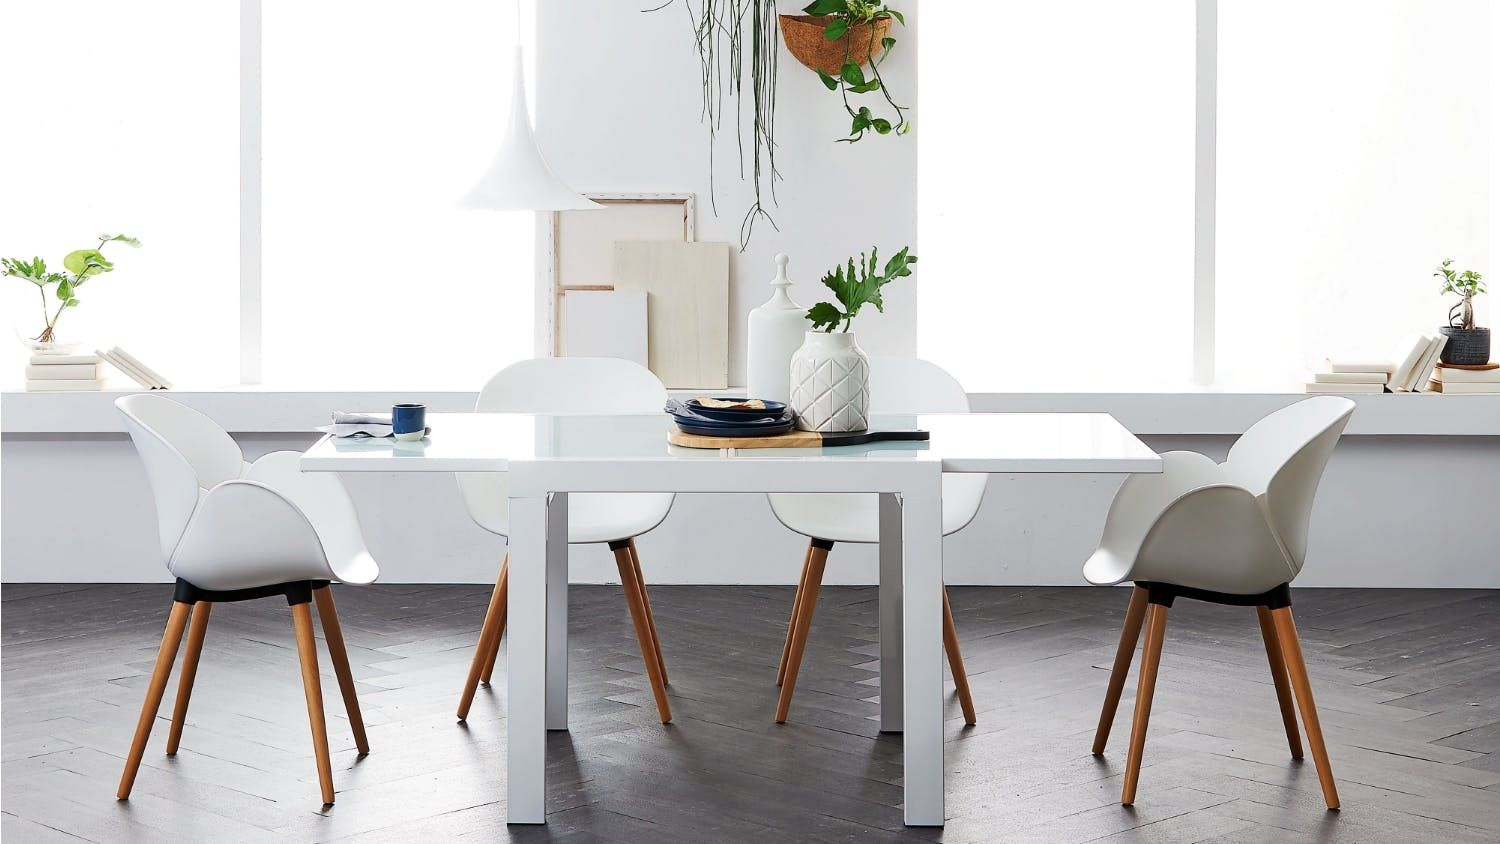 Monaco Extension Dining Table Monaco Extensions and Timeless design